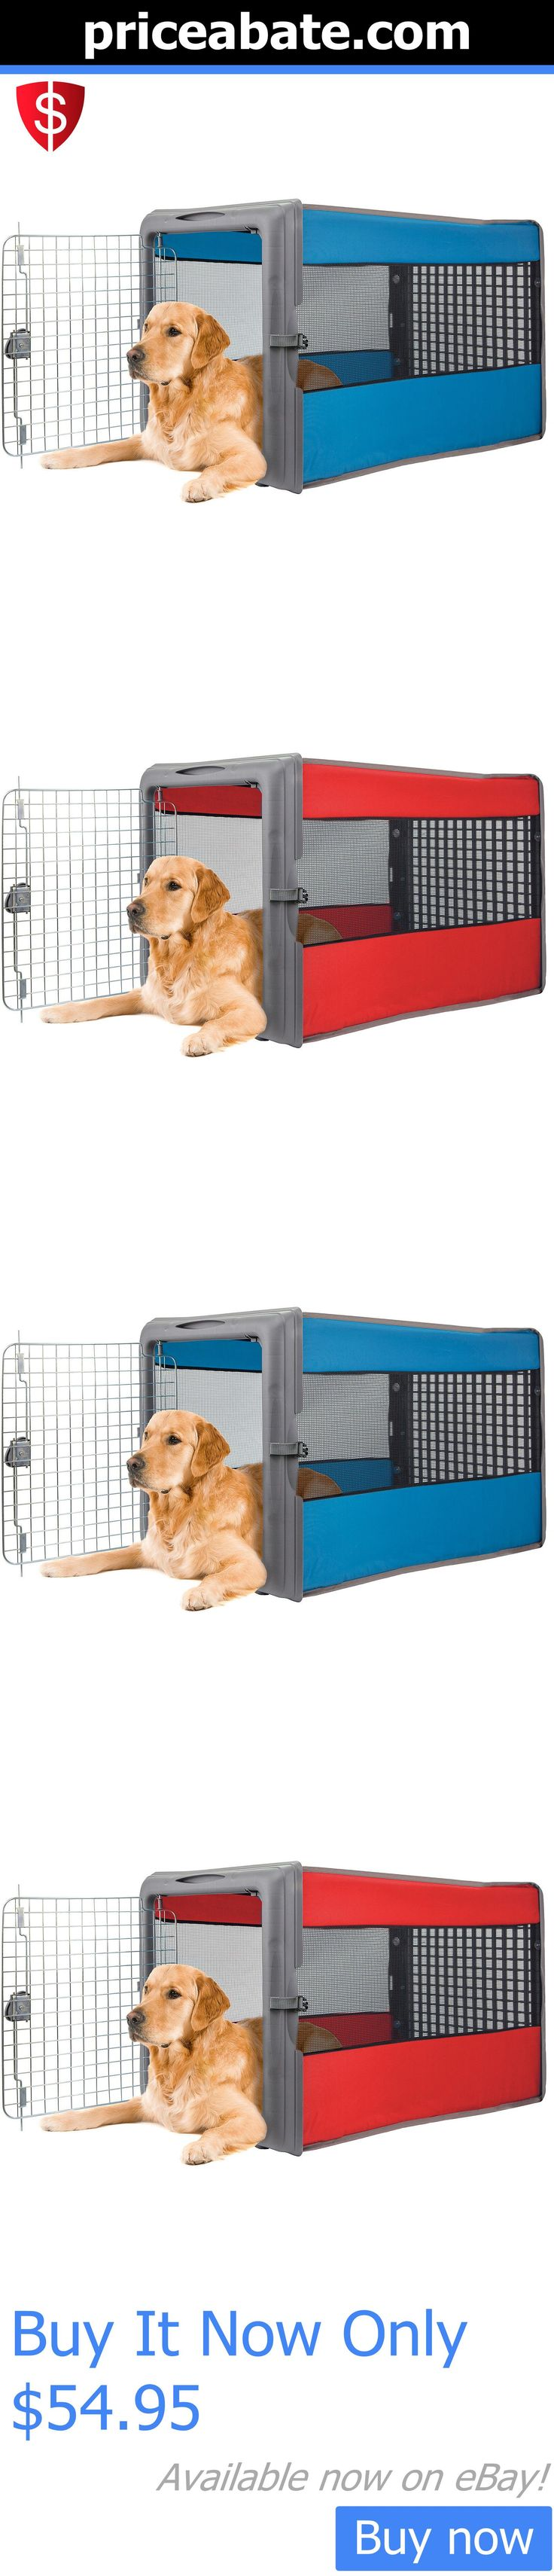 Animals Dog: Large Dog Crate Pet Cage Cat Soft Folding Pad House Bed Playpen Puppy Travel Pan BUY IT NOW ONLY: $54.95 #priceabateAnimalsDog OR #priceabate